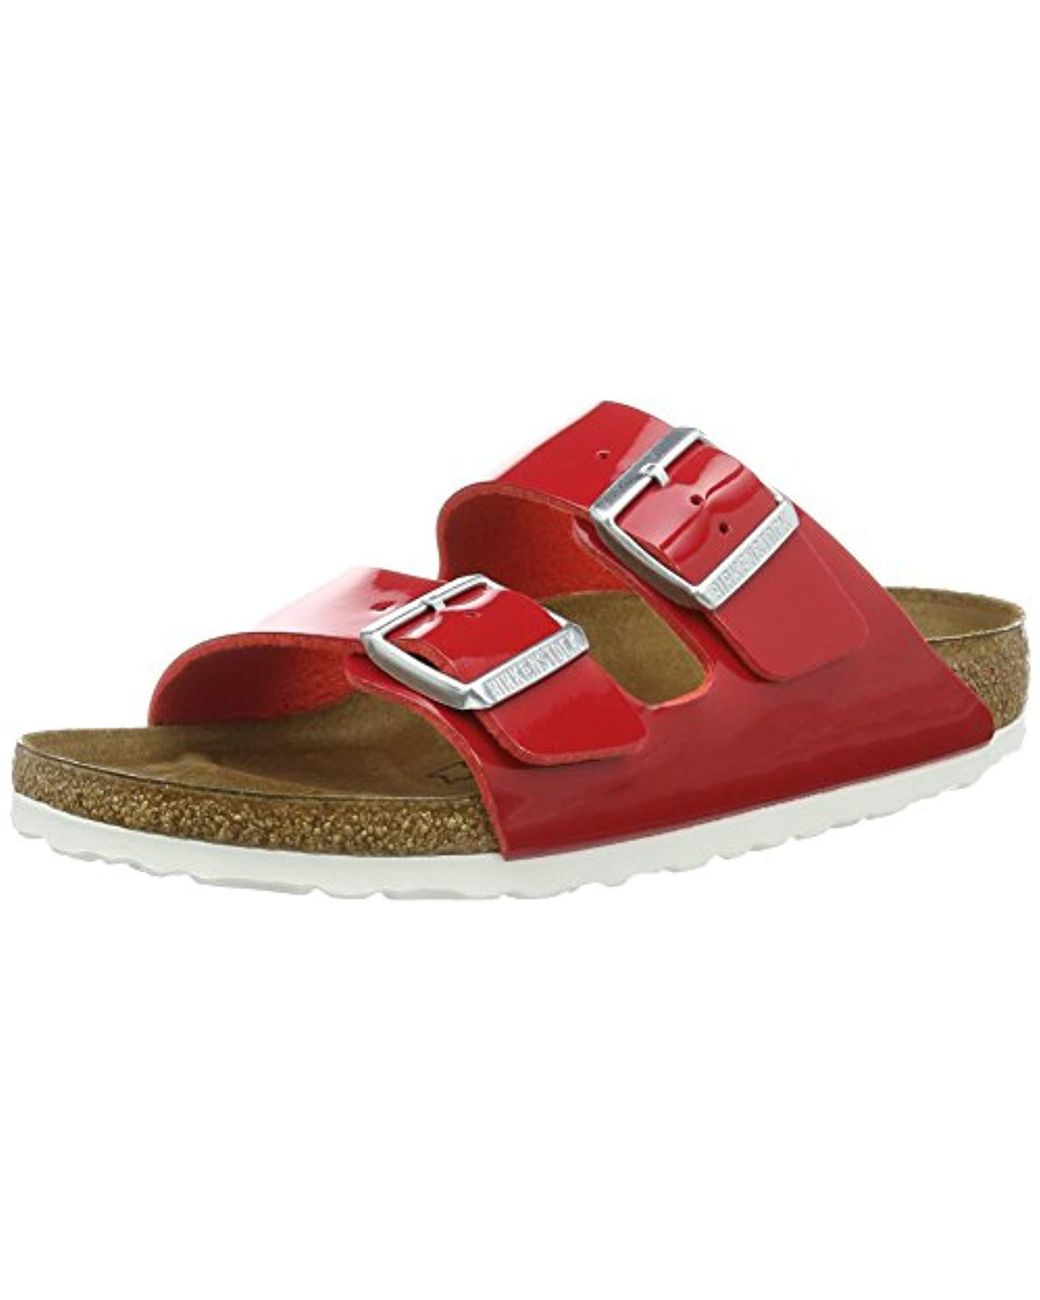 In Arizona Lyst Unisex Adults' Sandals Red Birkenstock Ygmi76vybf m0vy8nOPNw